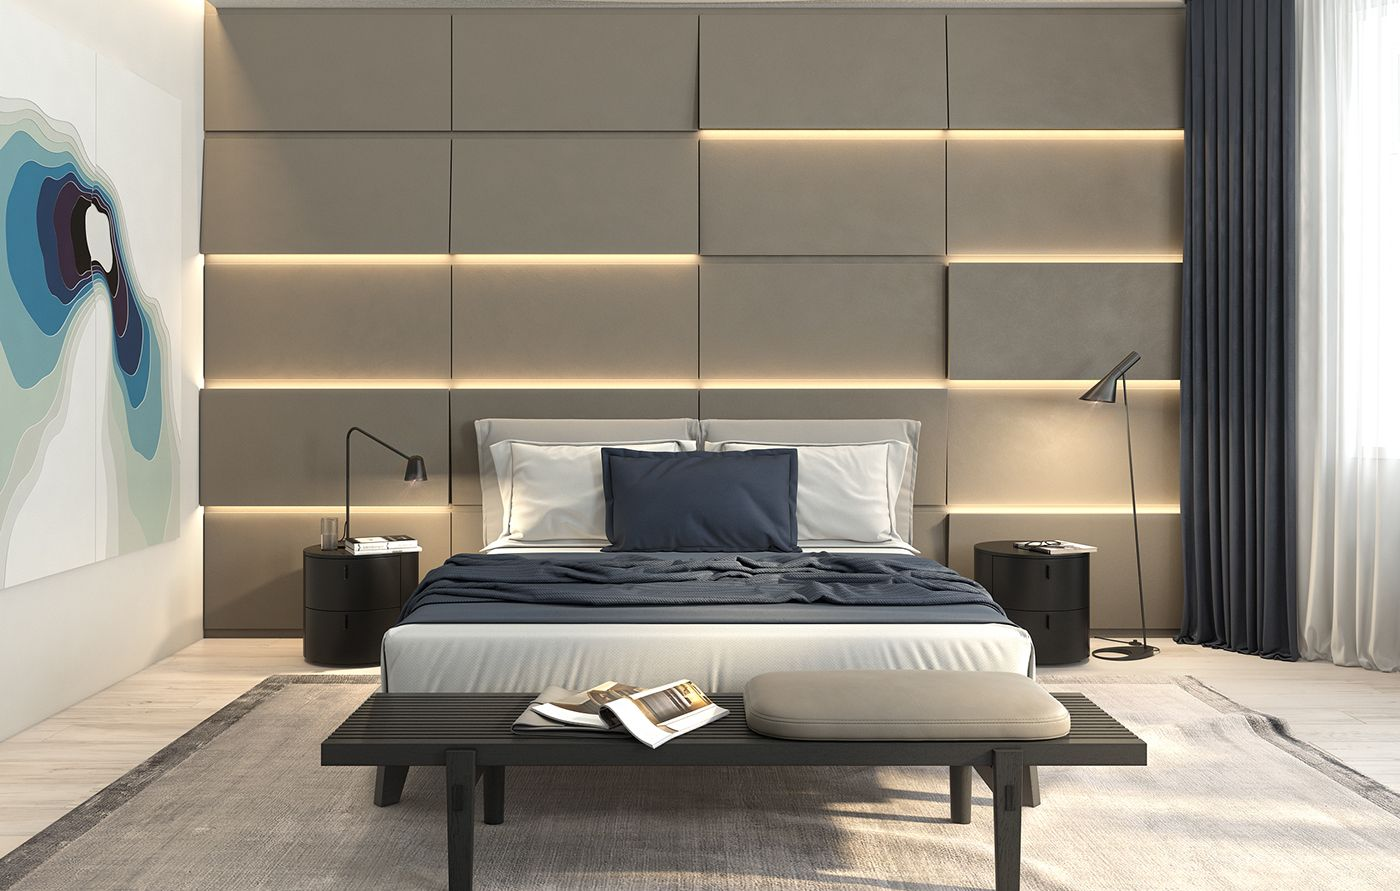 Minimalism In The Interior Bedroom For The Lady 2016 On Behance